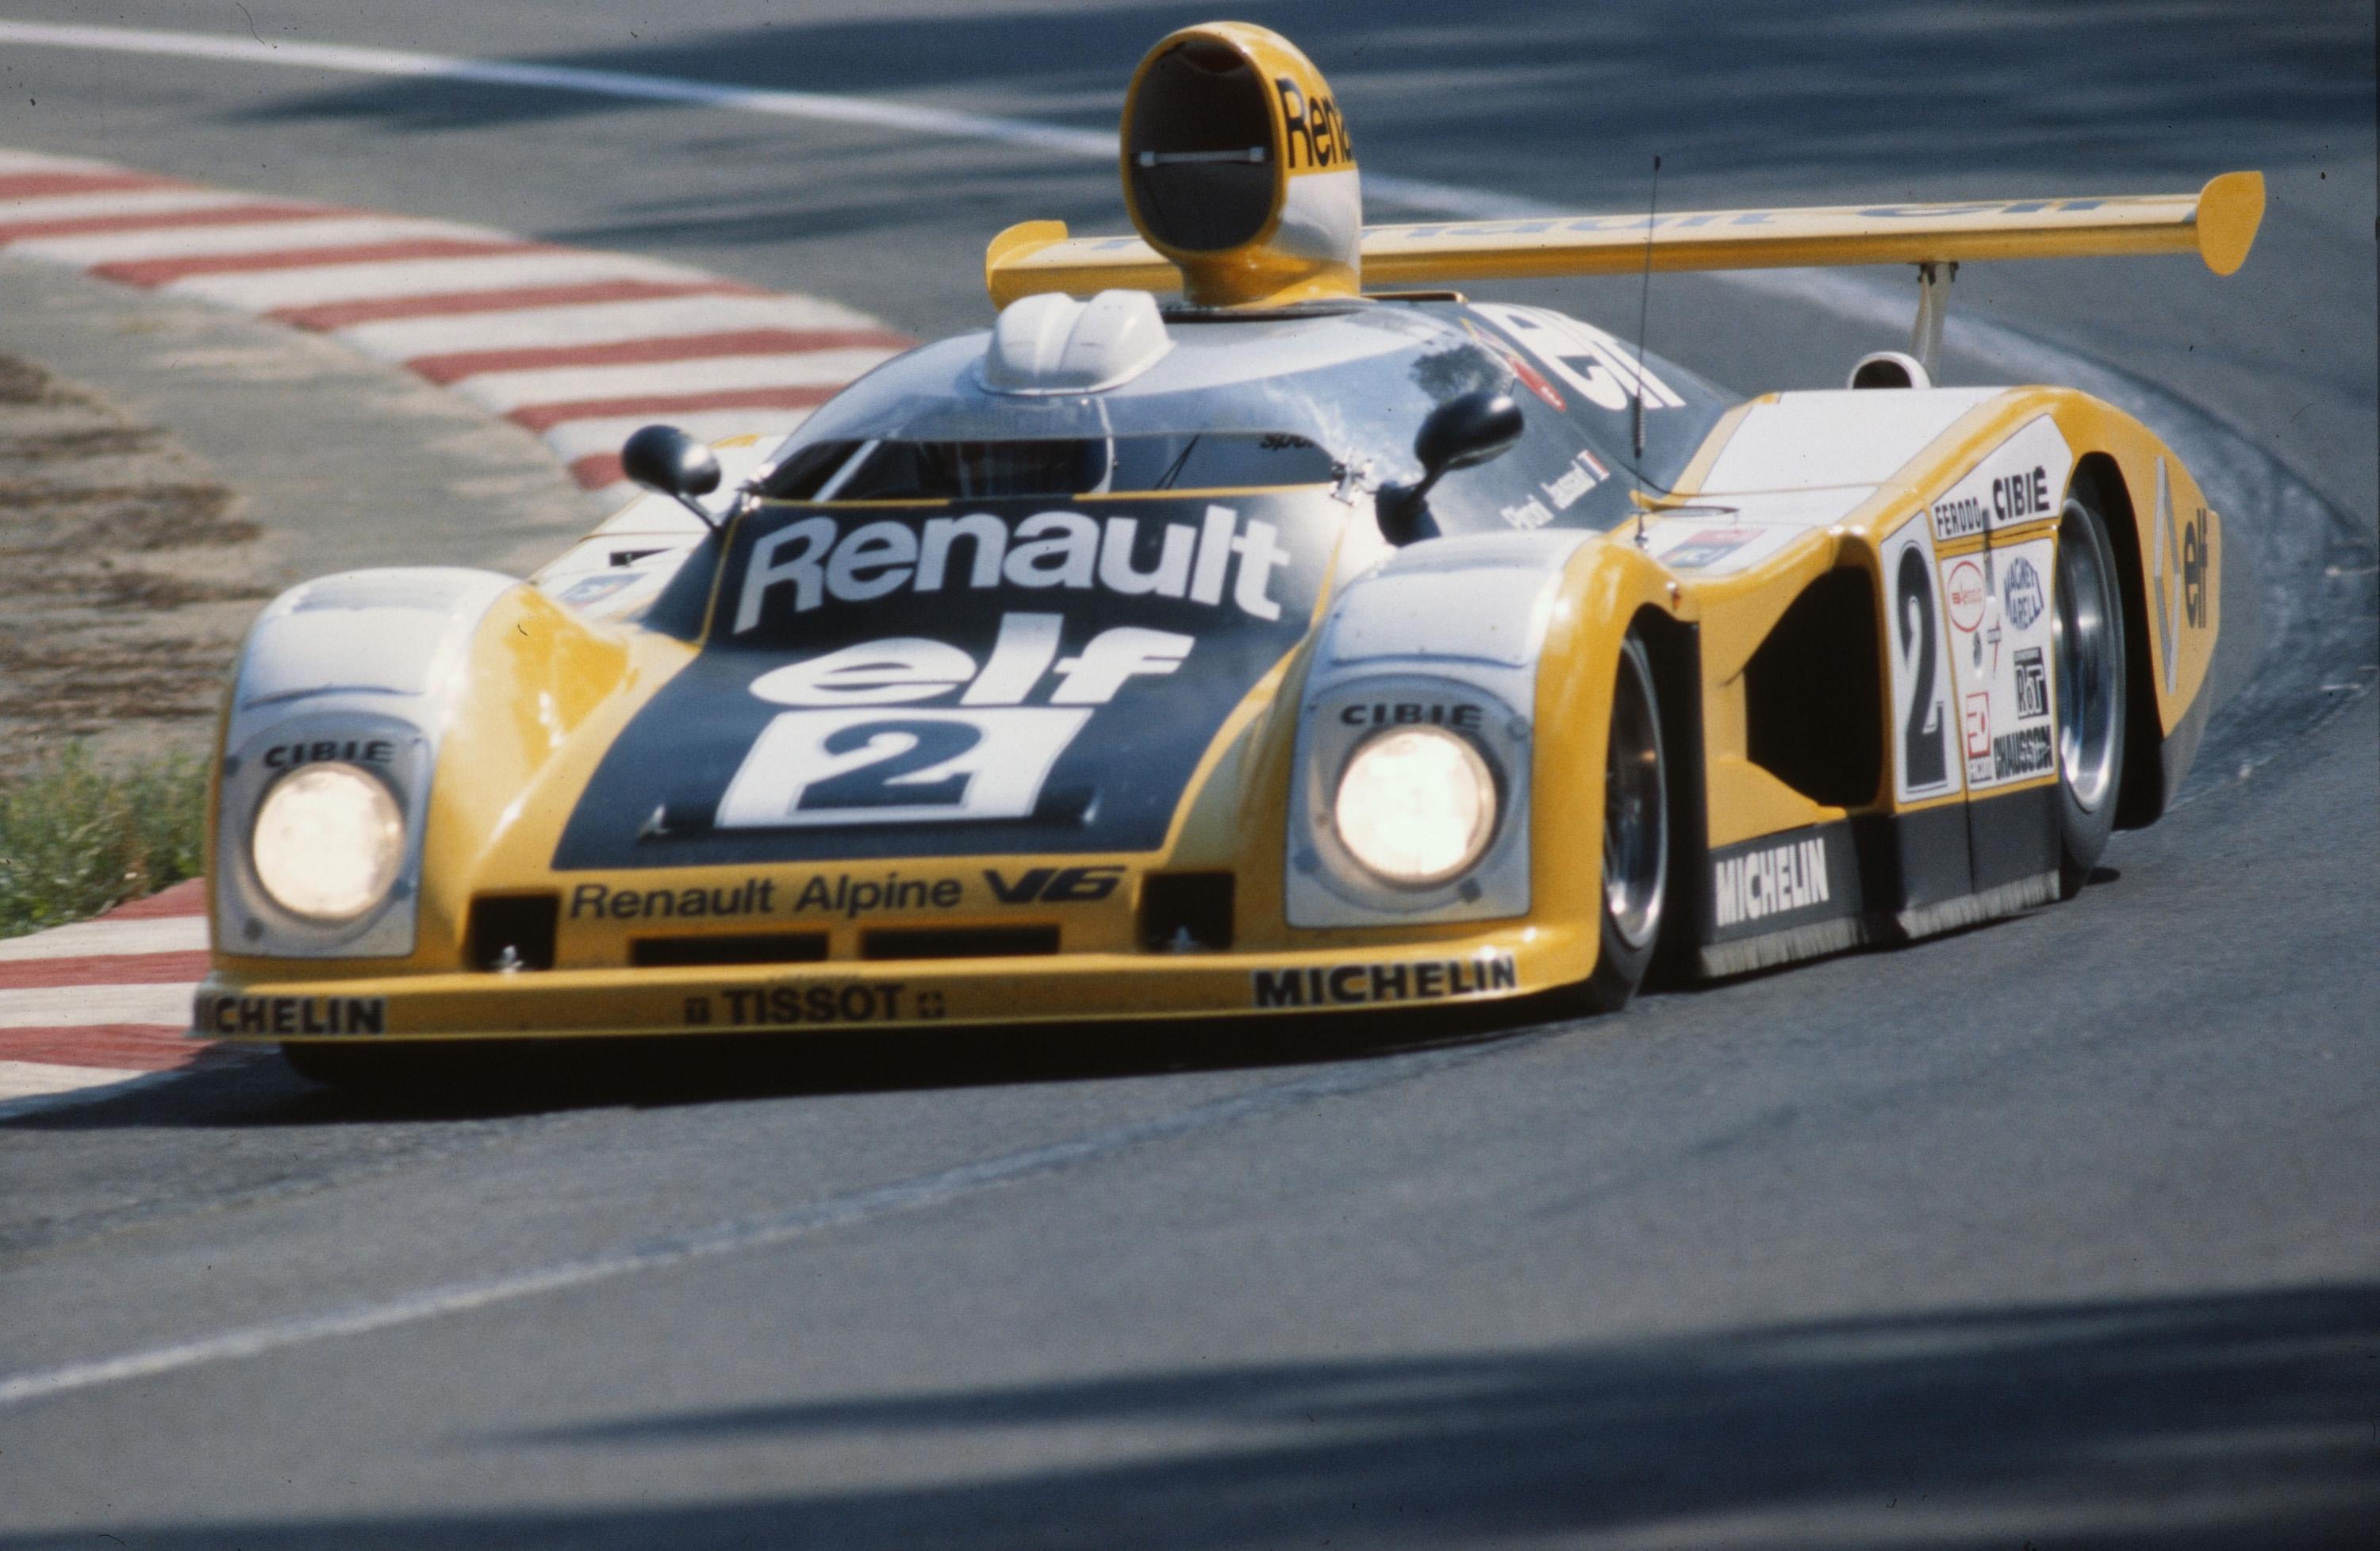 Renault Alpine Le Mans A442 photo #1